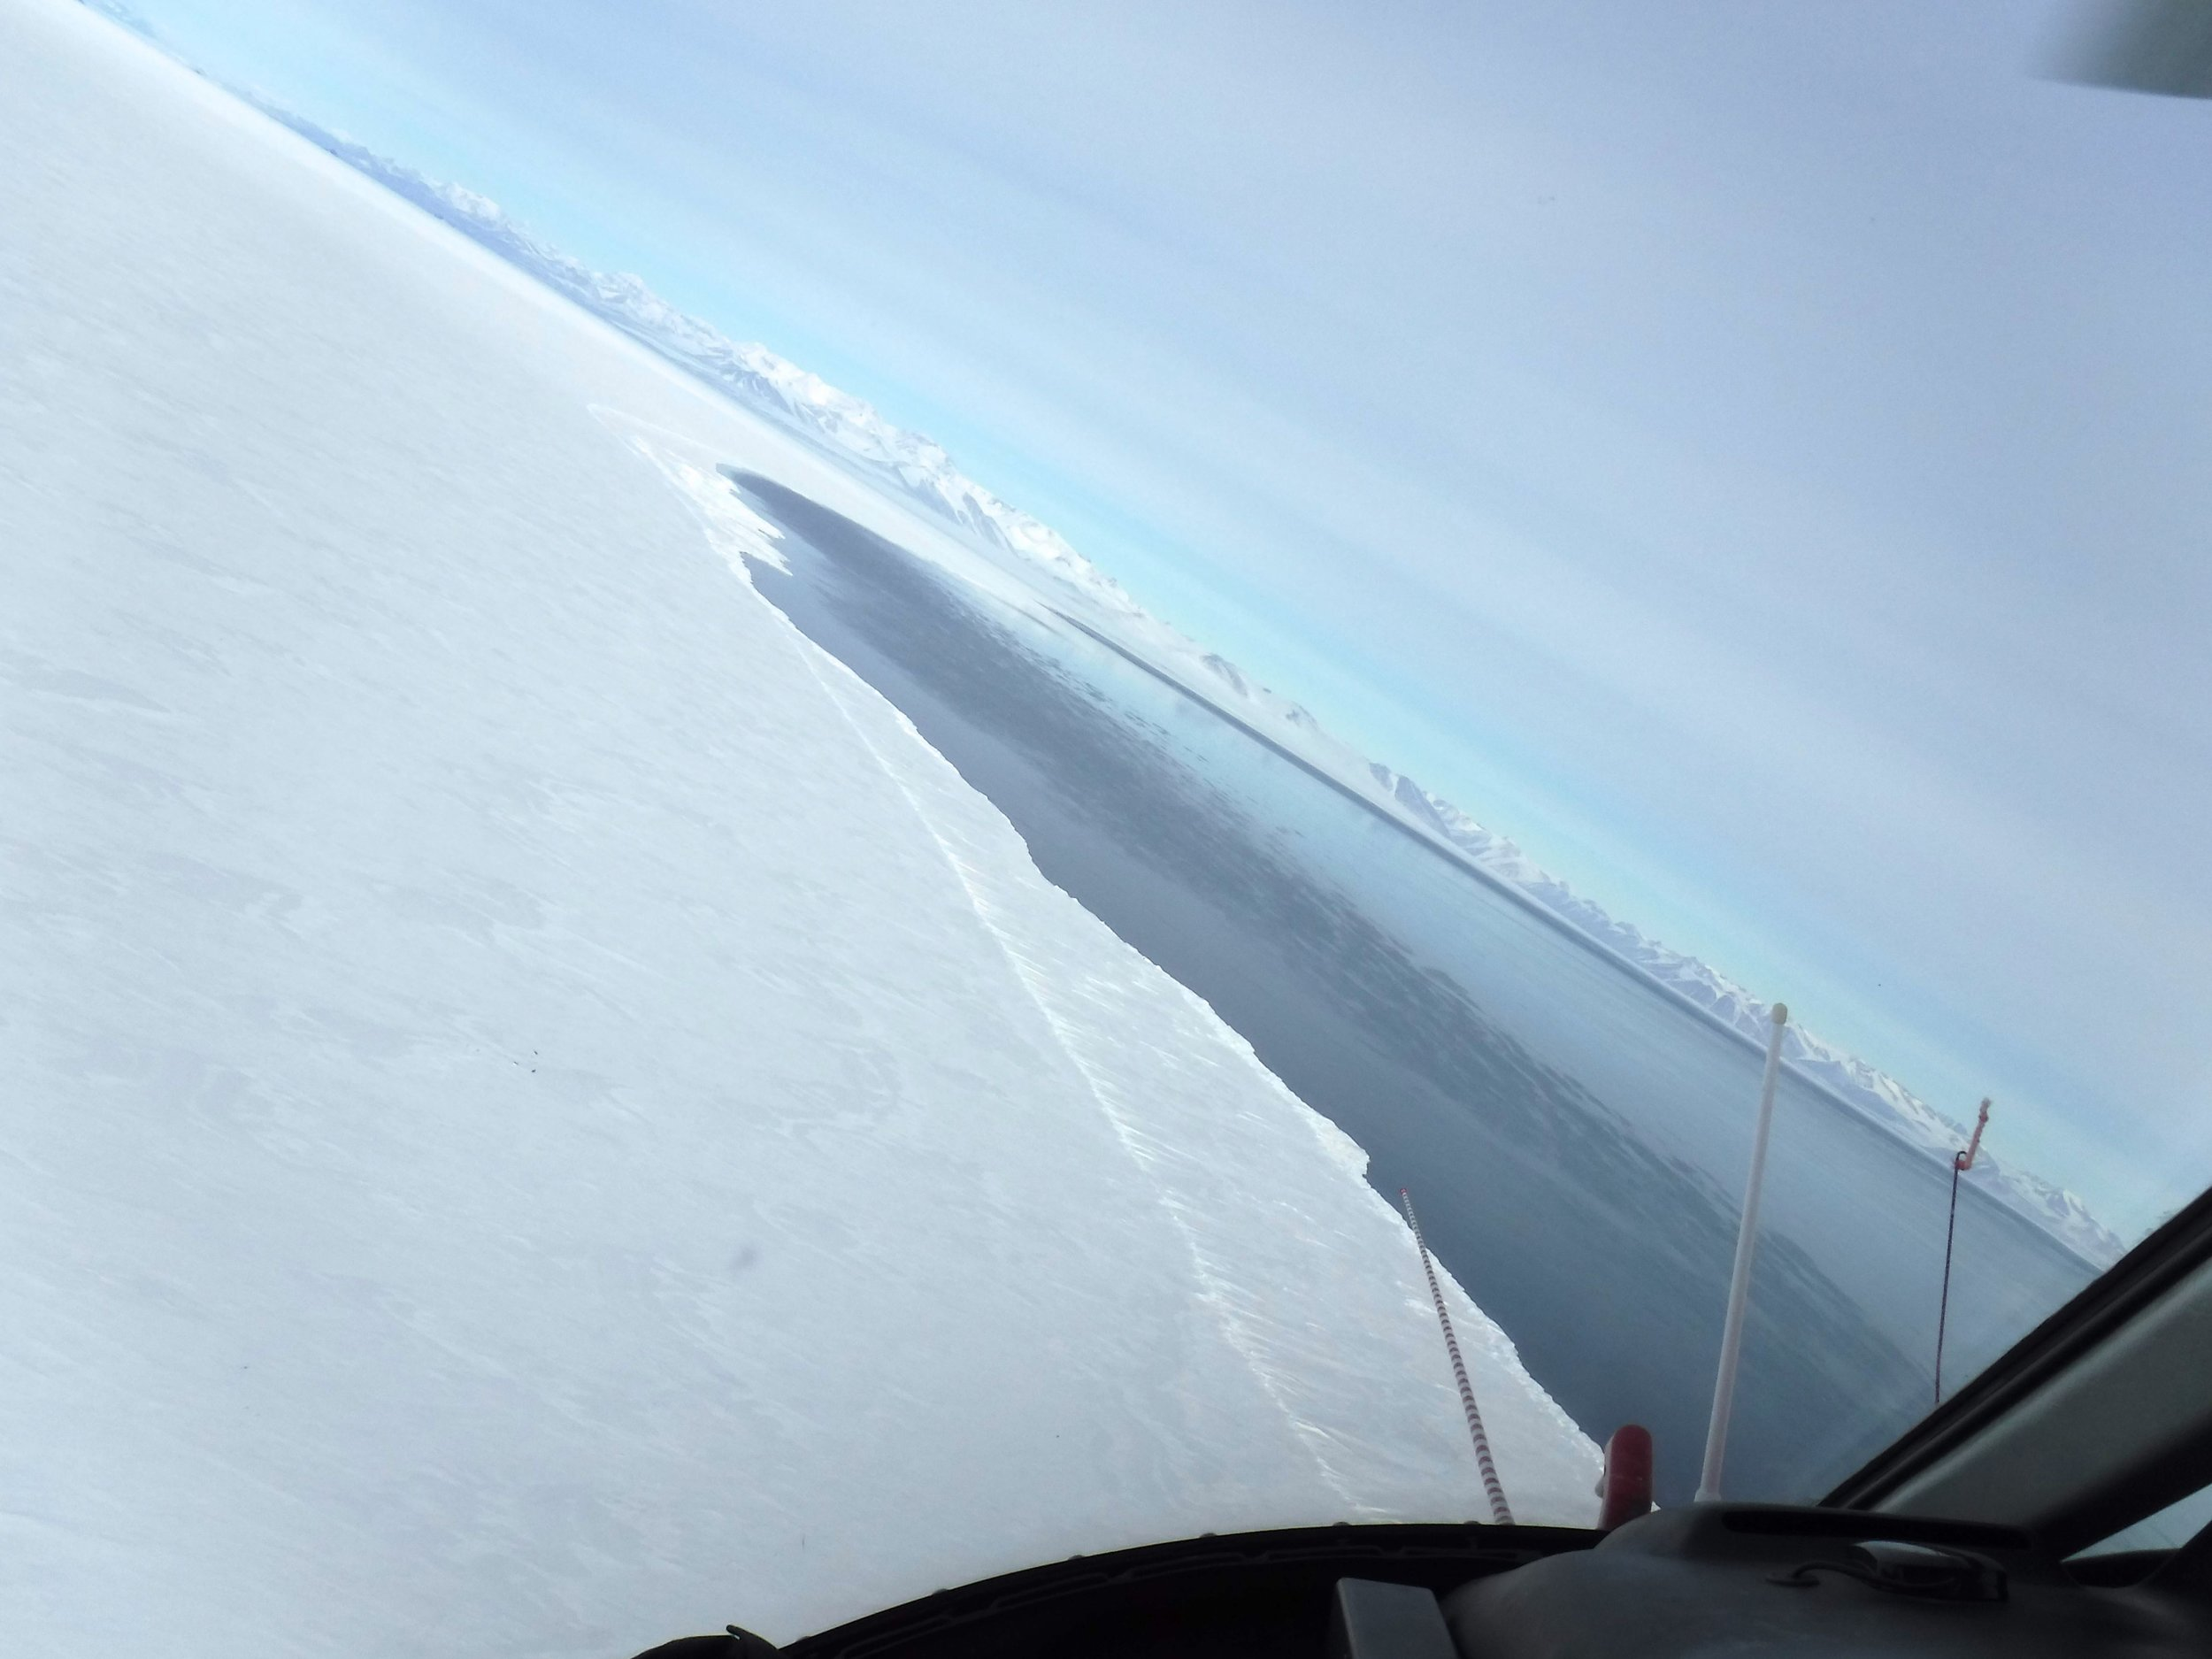 View of ice-edge as helicopter turns. Photo credit: Caitlin Scarano.